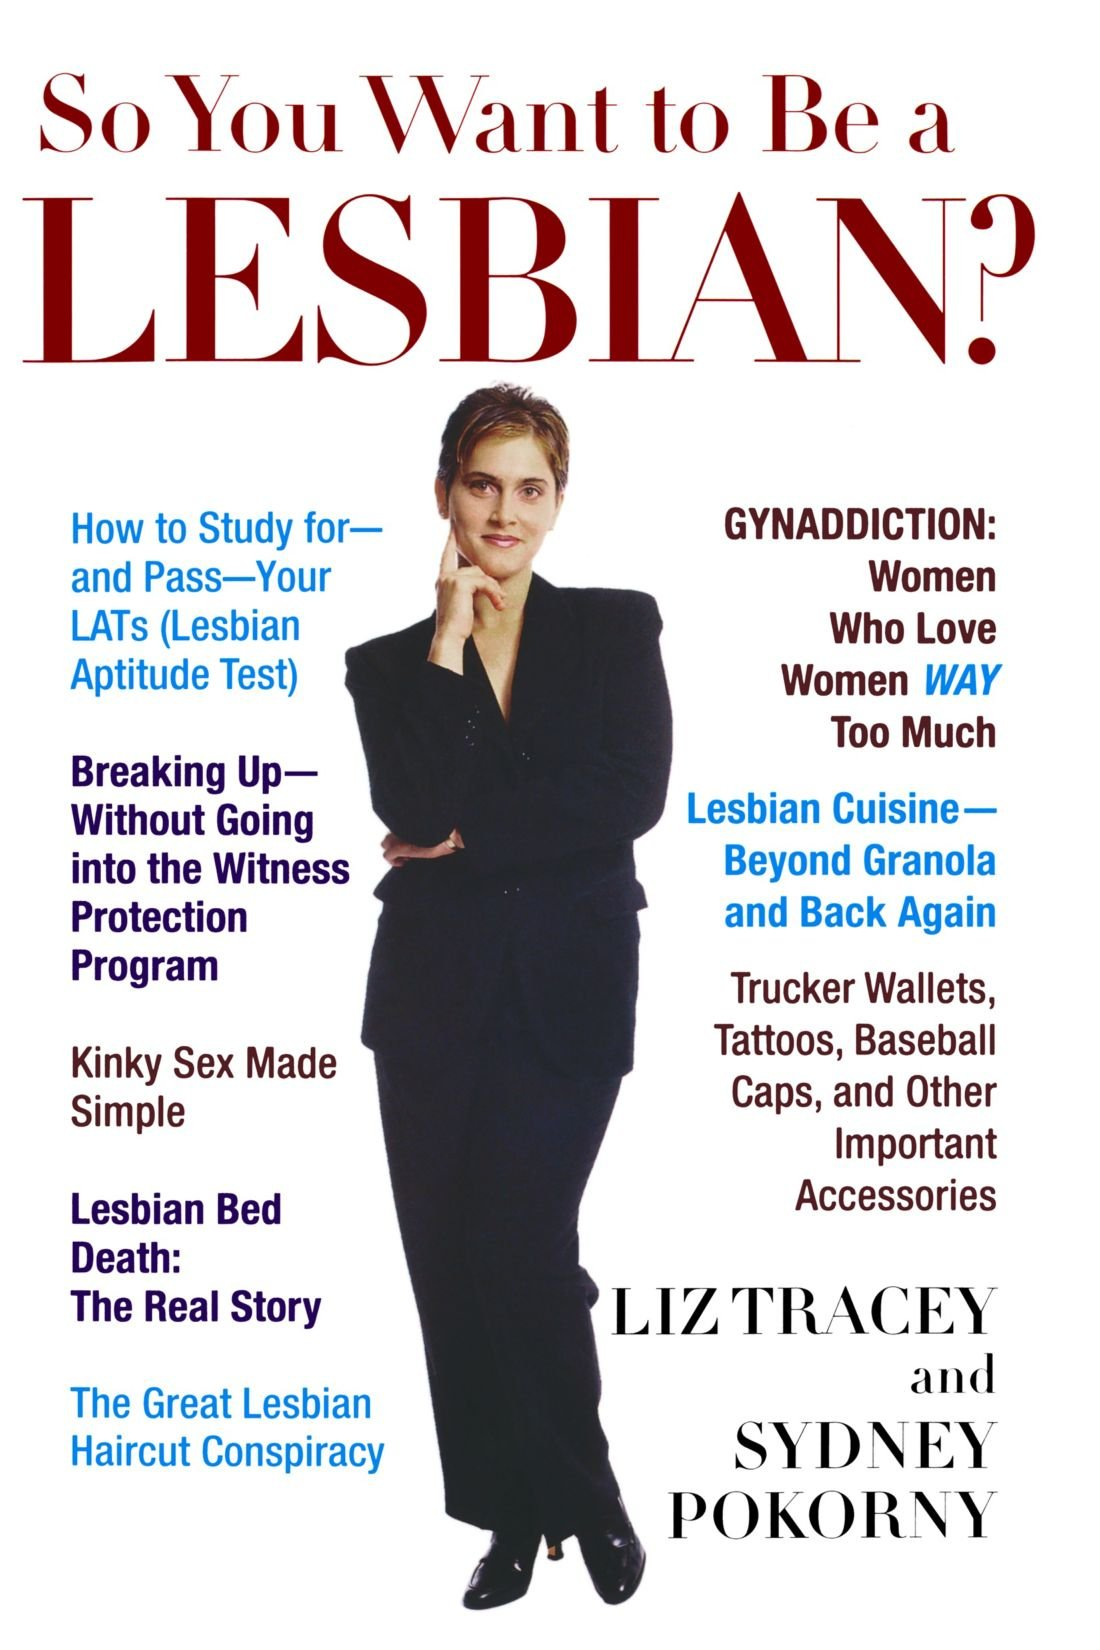 26 Triumphantly '90s Lesbian Book Covers | Autostraddle. ""